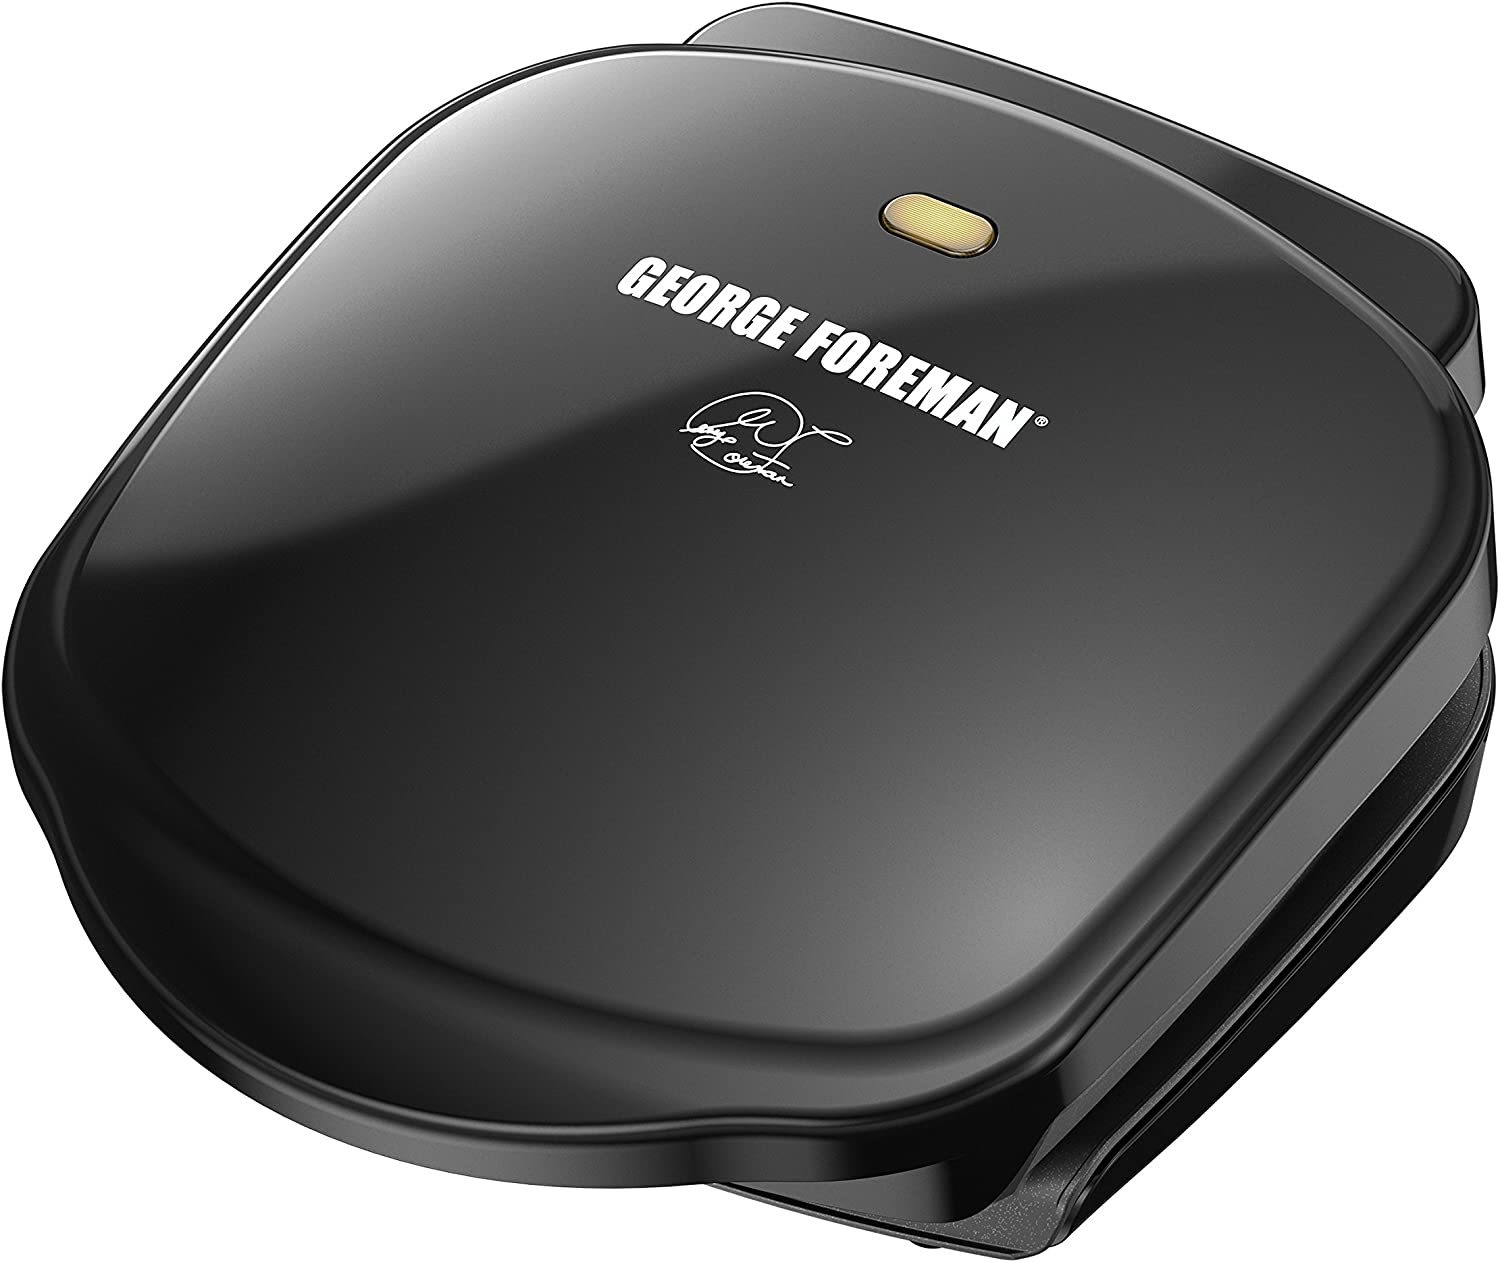 George Foreman 2-Serving Classic Plate Electric Indoor Grill and Panini Press, Black, GR10B